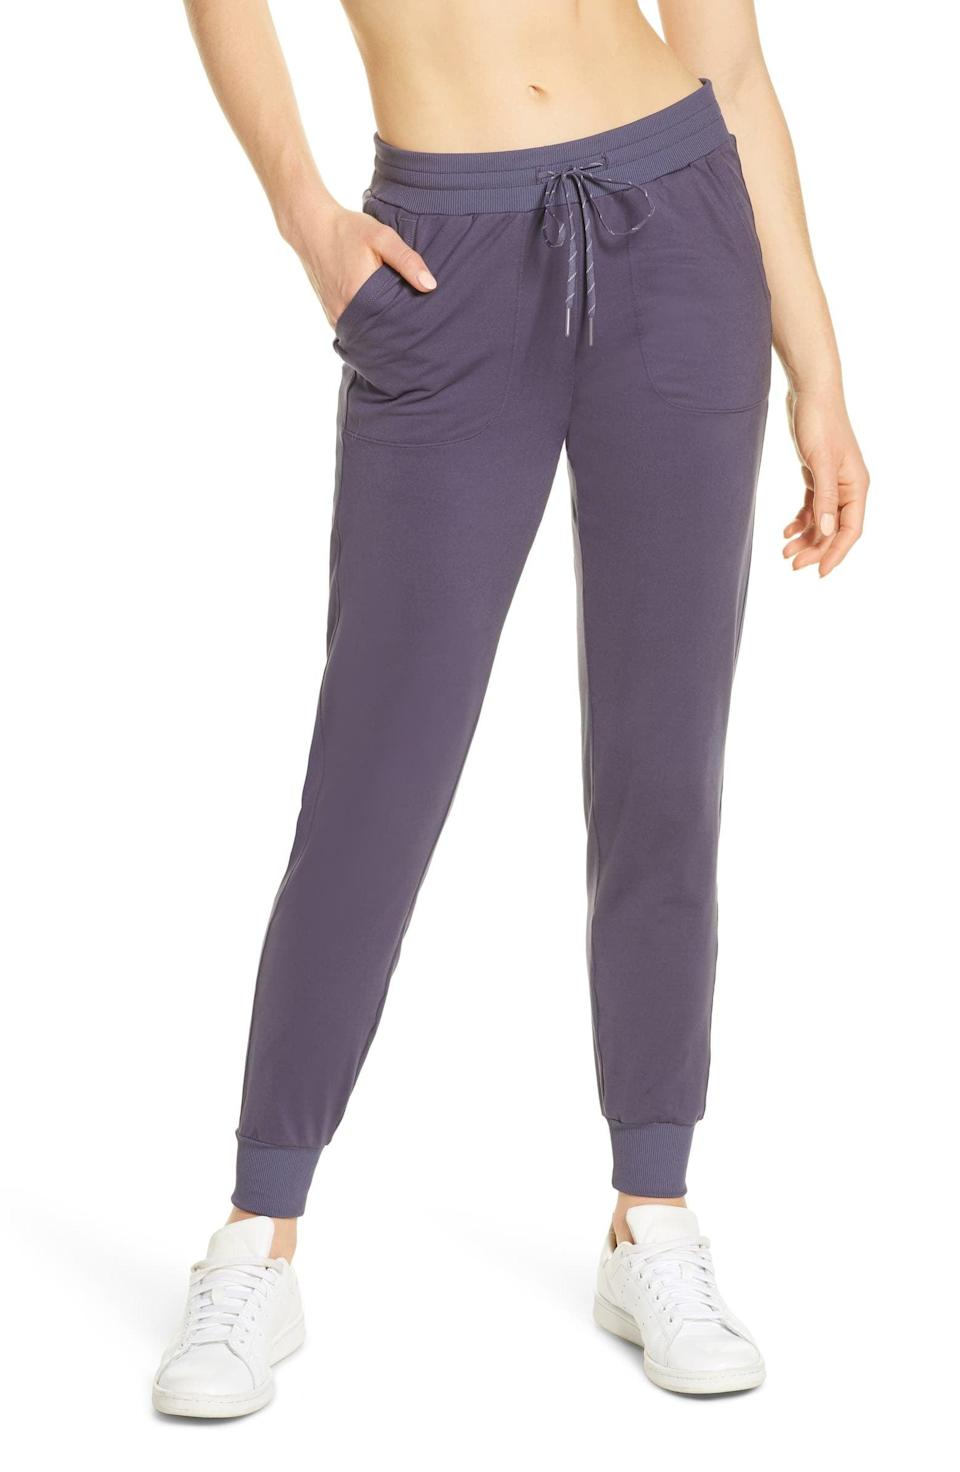 """<p>""""The name alone was enough to get me. Since we're still working from home, I do indeed live in these <span>Zella Live In Pocket Joggers</span> ($59). They're cute and cozy, and they can be dressed up or down. I love to pair them with slippers, sneakers, or just plain socks, and they also look cute with a half-zip jacket, T-shirt, or crop top. The styling options are endless!"""" - Lauren Harano, editorial assistant, Living</p>"""